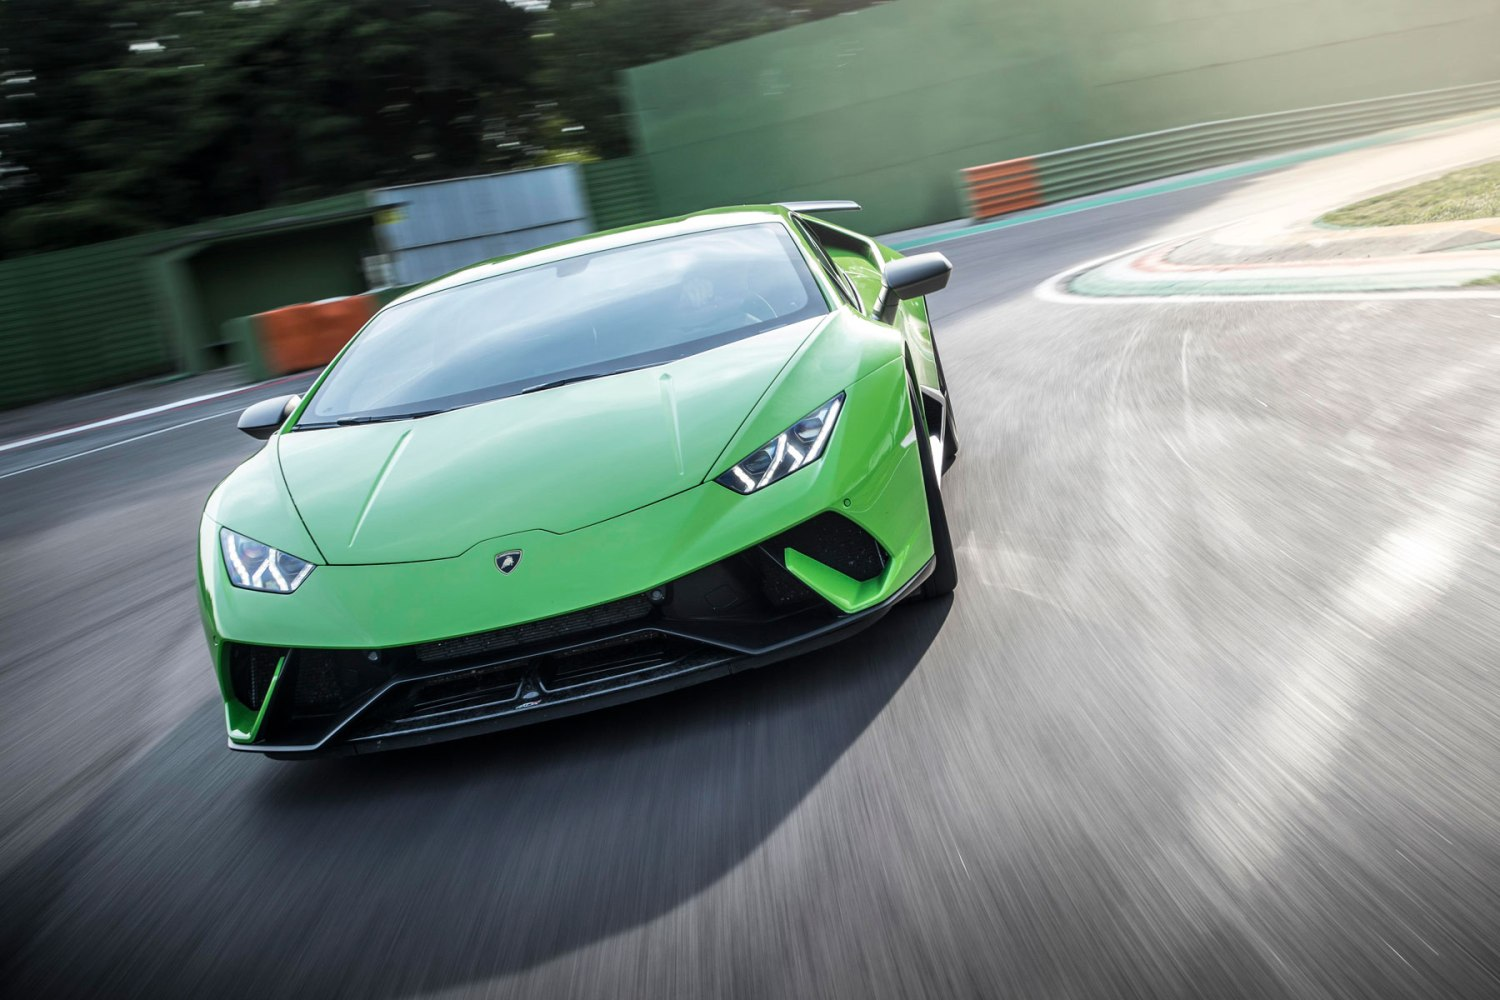 Lamborghini Huracan Performante – 2.9 seconds